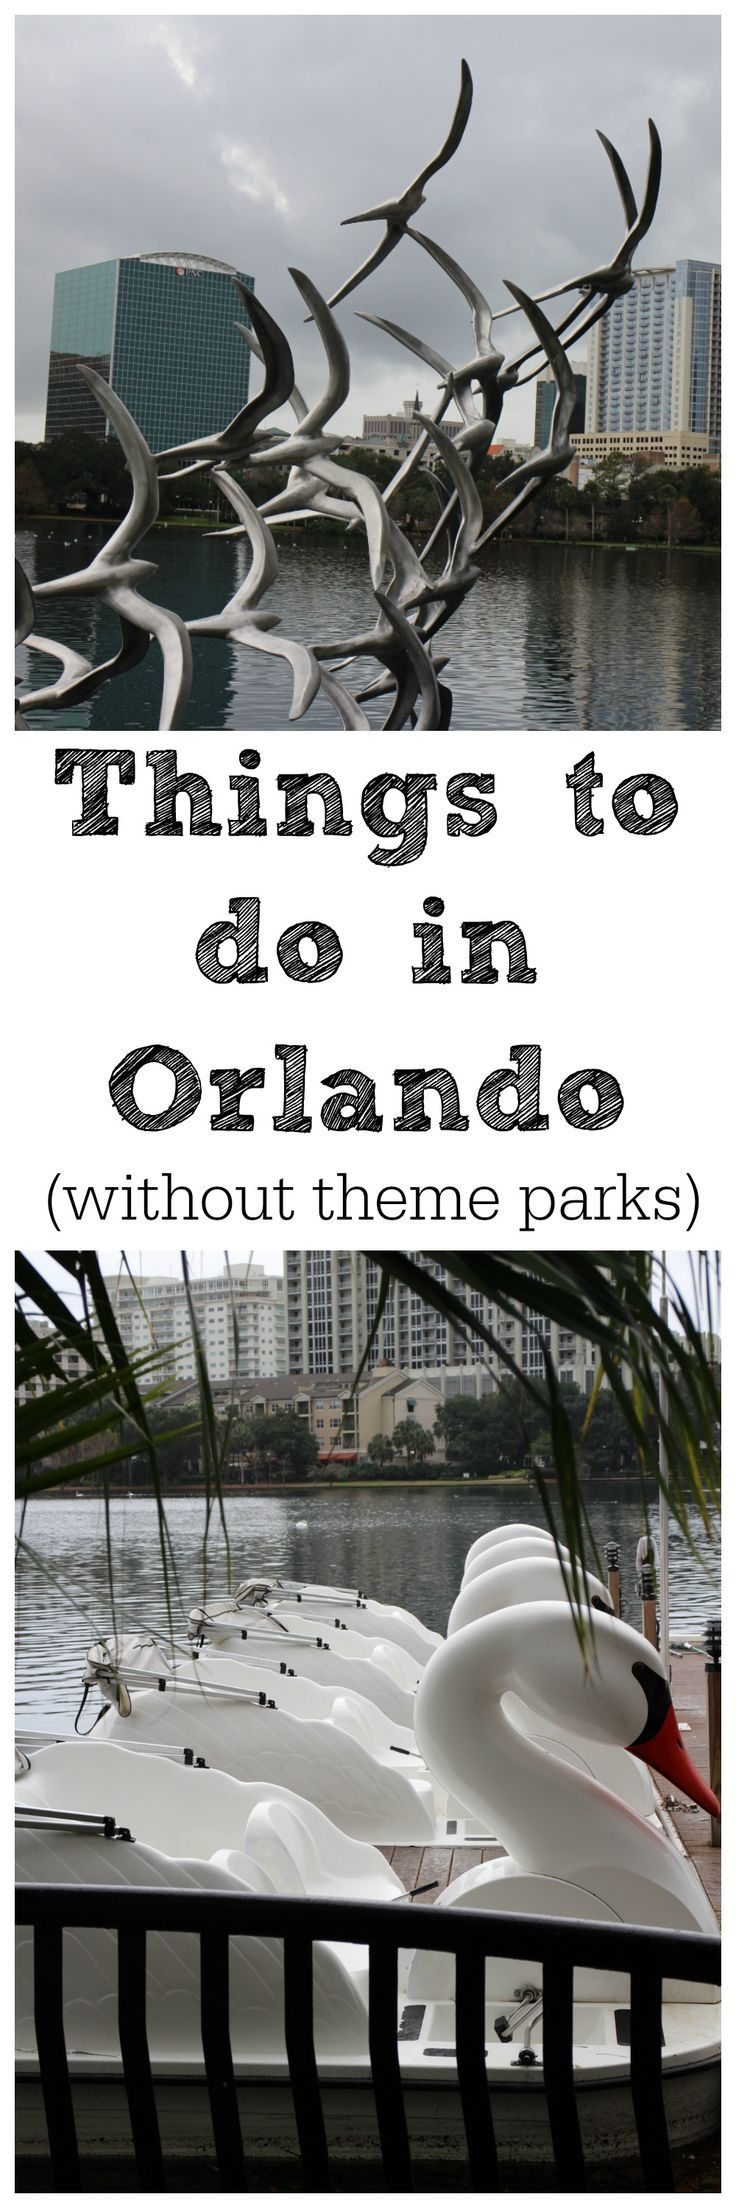 Things to do in Orlando, Florida (that don't include theme parks): Lakes, gardens, stores, restaurants & more   cadryskitchen.com